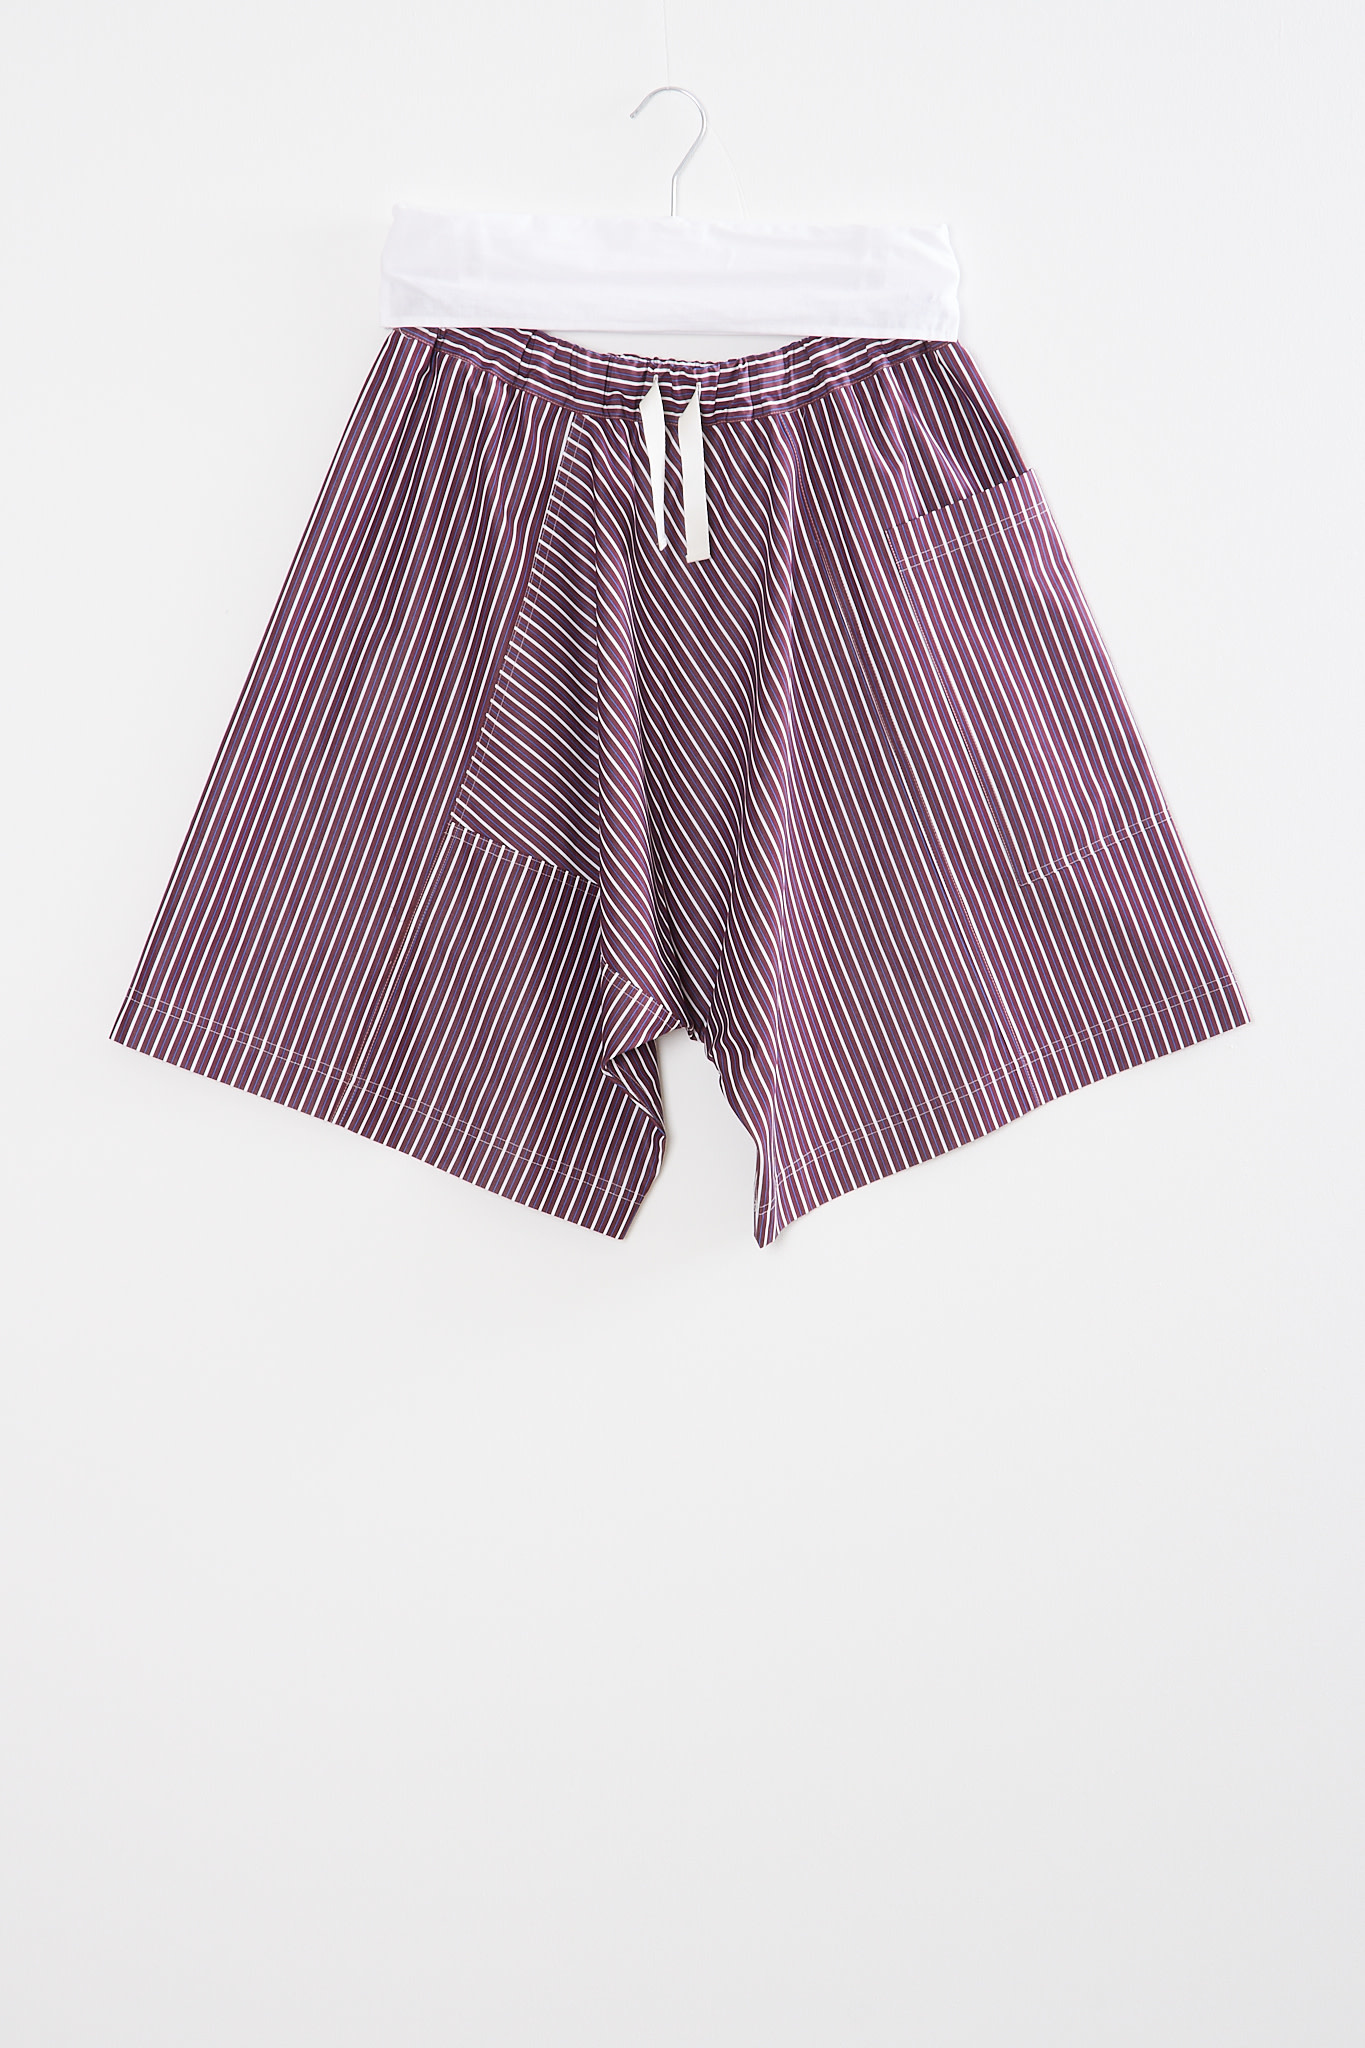 Sofie d'Hoore - Pulse striped cotton shorts